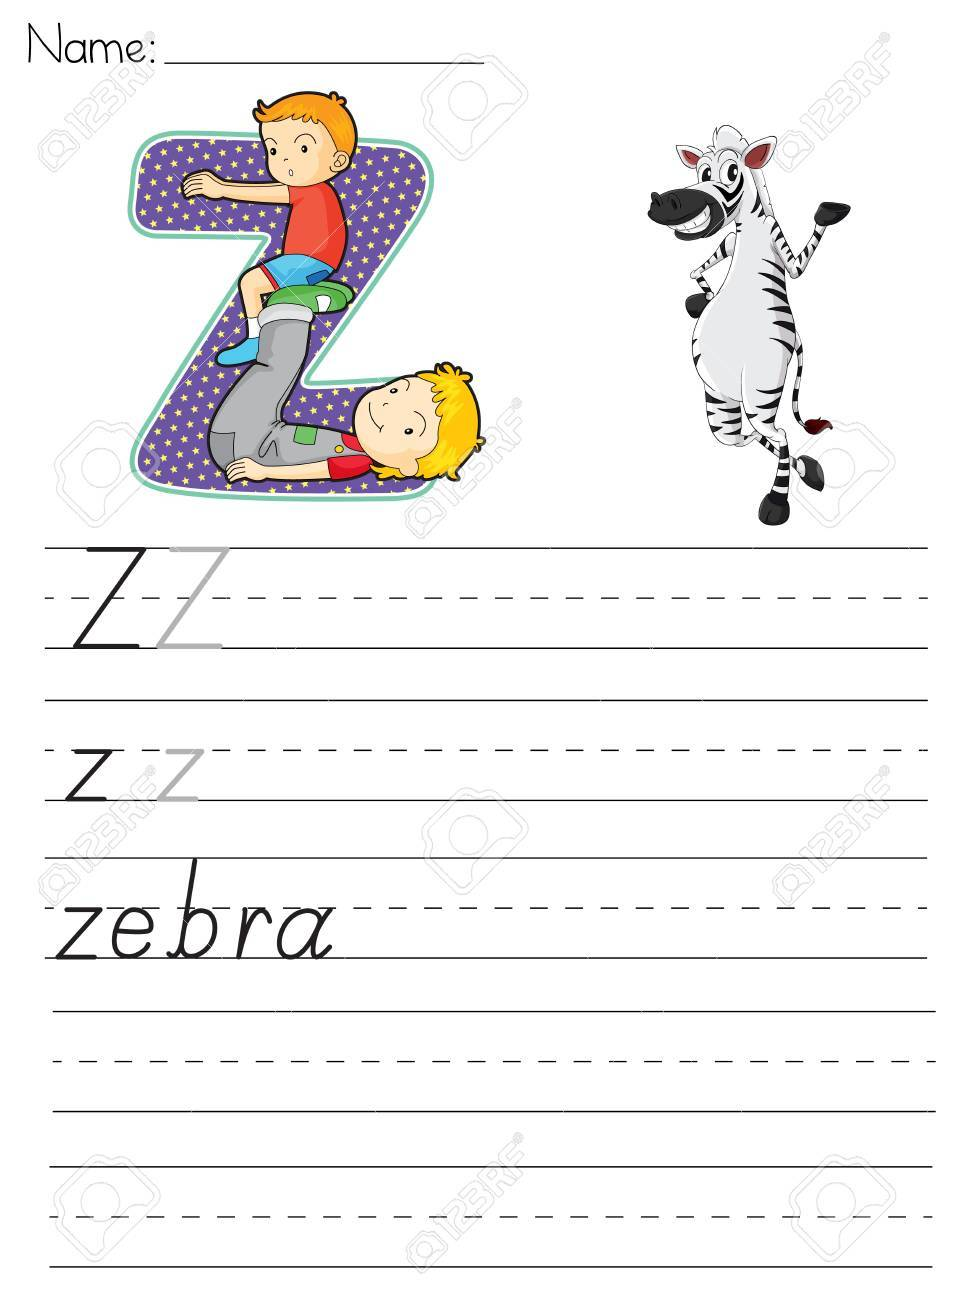 Alphabet Worksheet Of The Letter Z Royalty Free Cliparts, Vectors ...